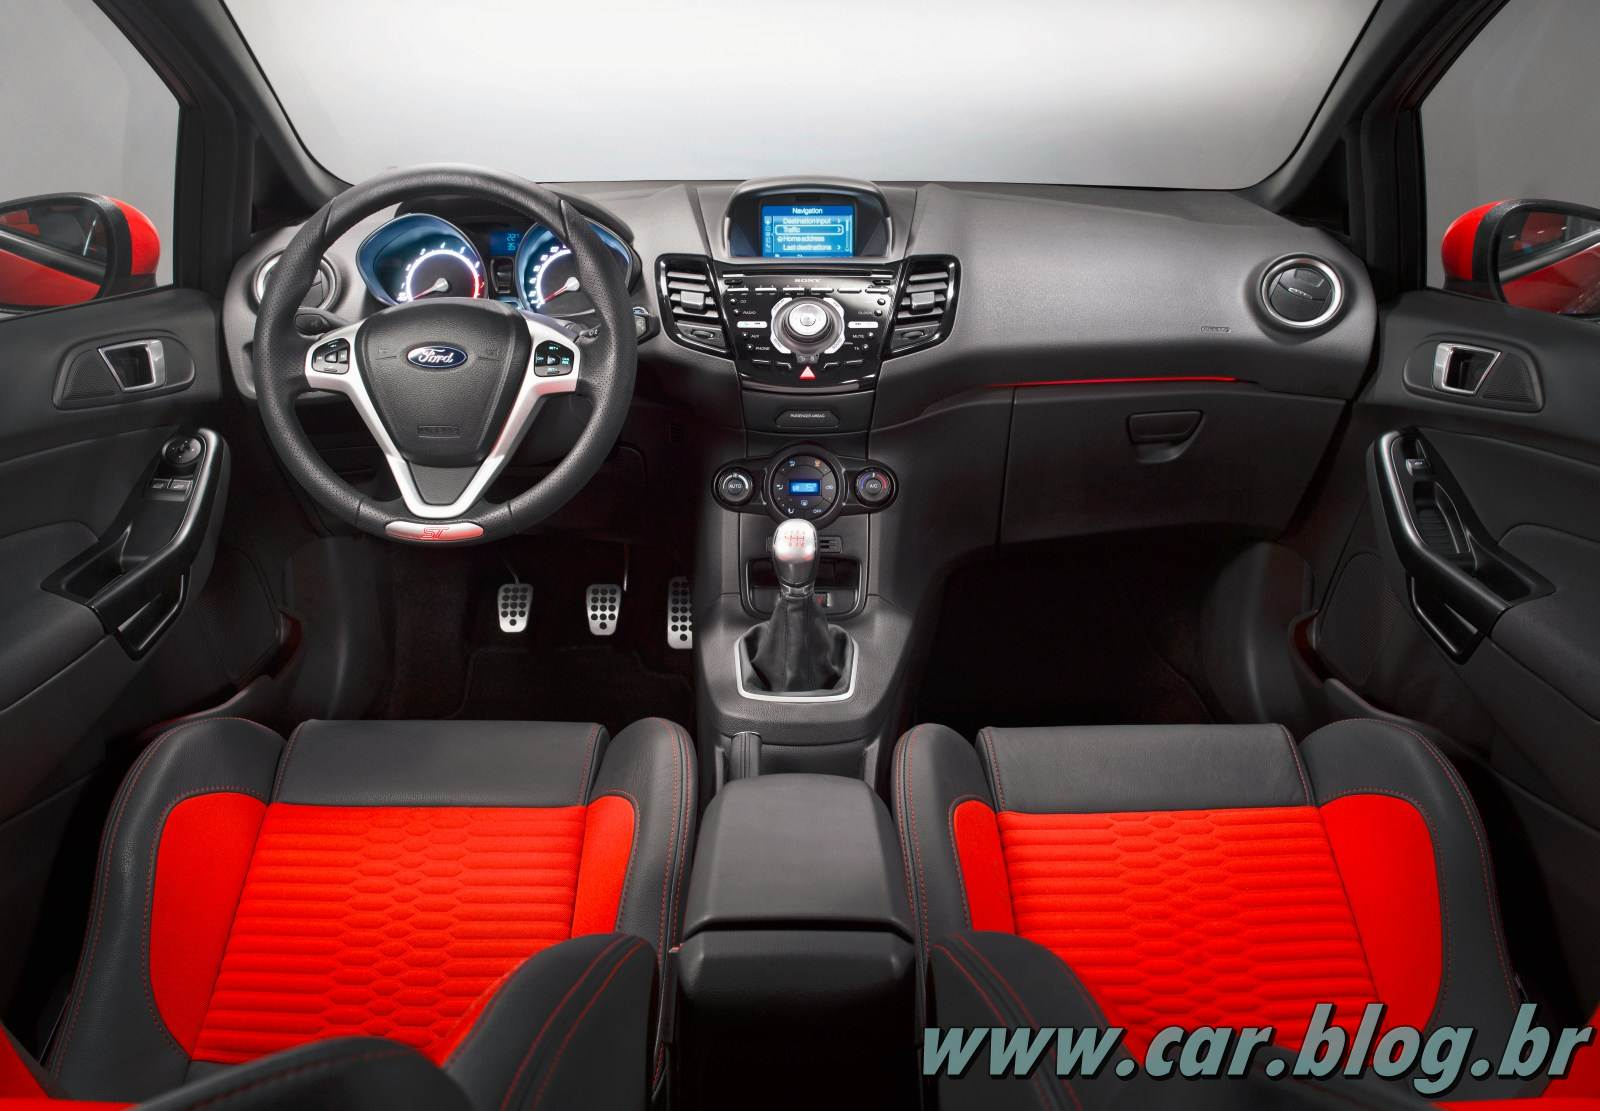 Ford Everest 2013 Specs Indonesia | Autos Post